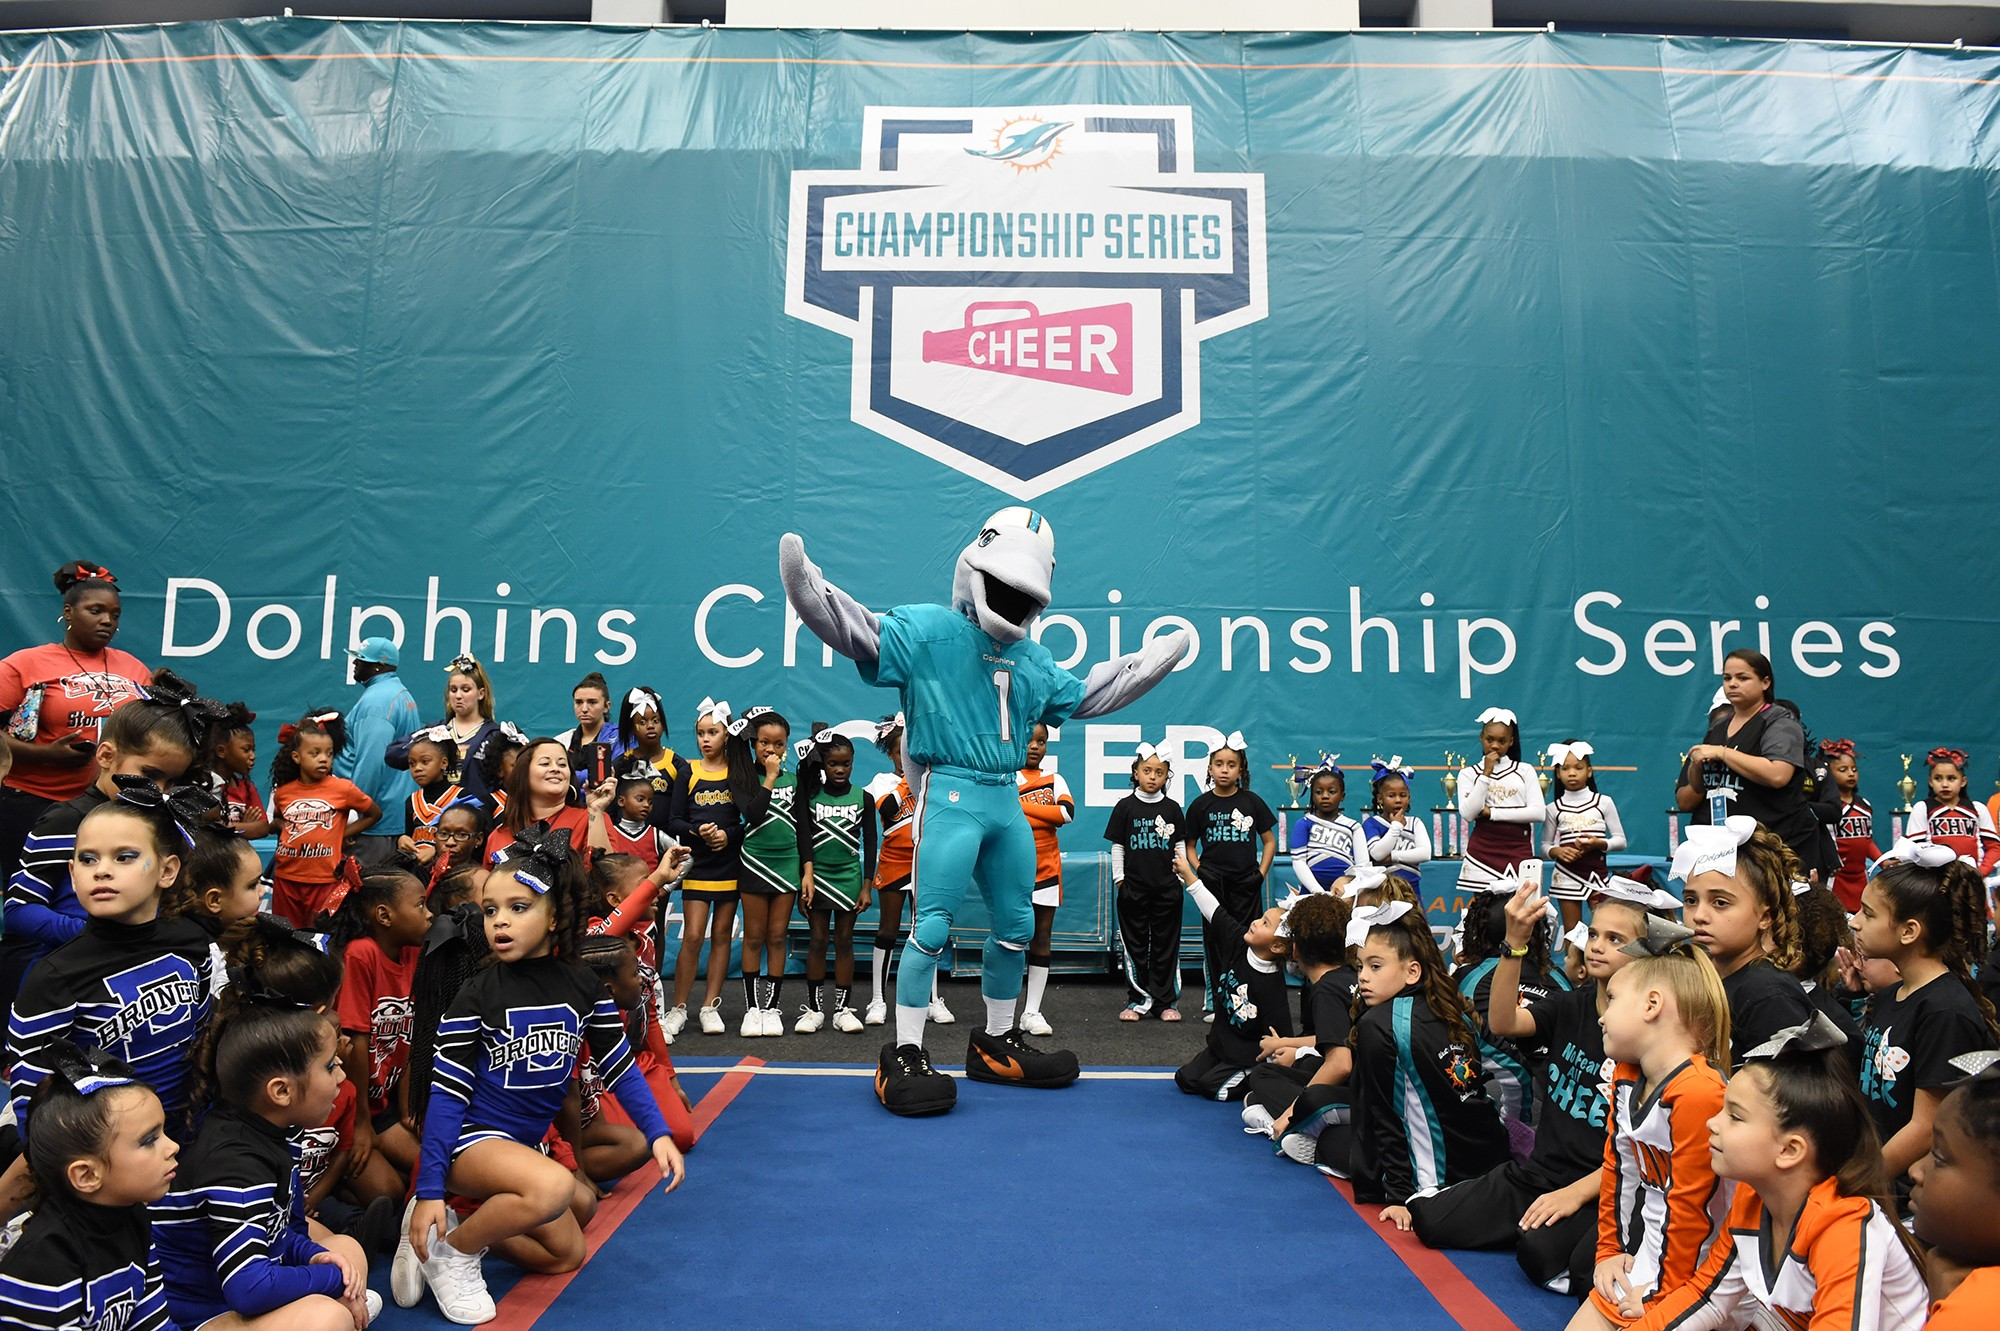 TD-at-the-Dolphins-Championship-Series-Cheer-Competition-at-Nova-Southeastern-University